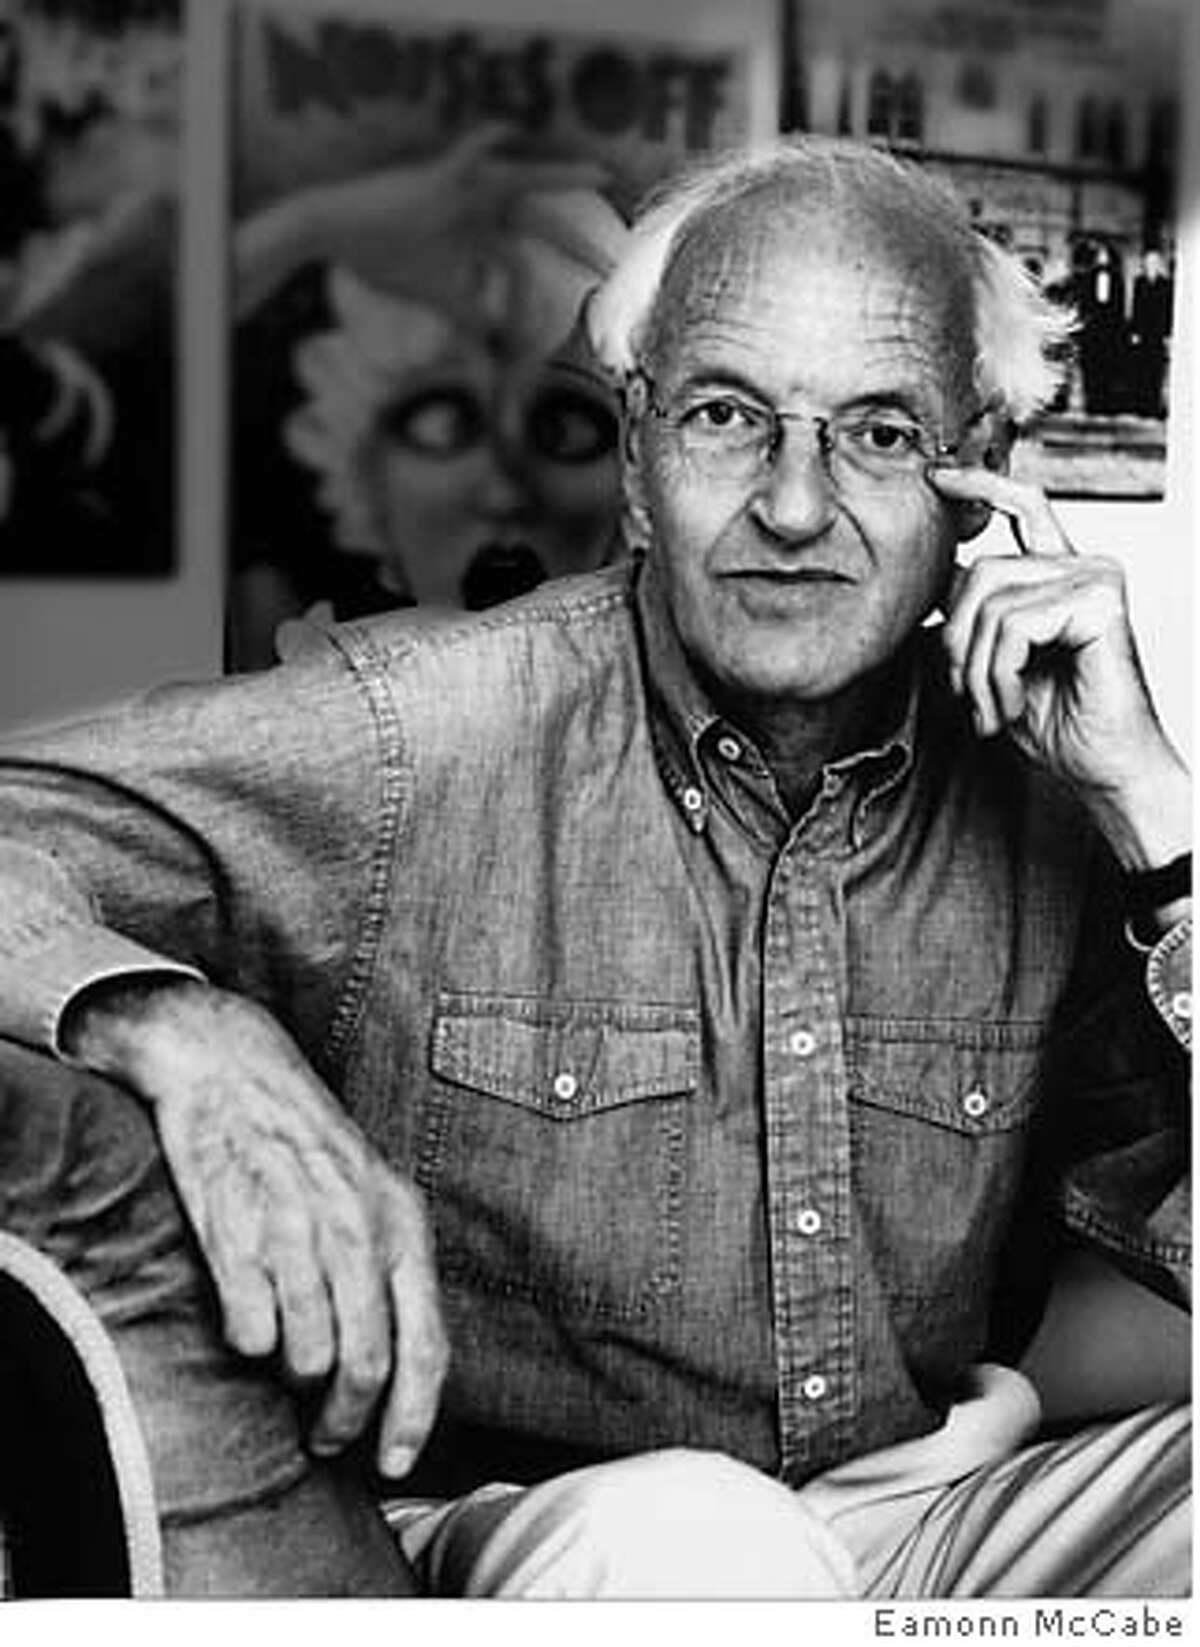 """Michael Frayn, author of """"The Human Touch: Our Part in the Creation of the Universe"""" FOR USE WITH BOOK REVIEW ONLY"""